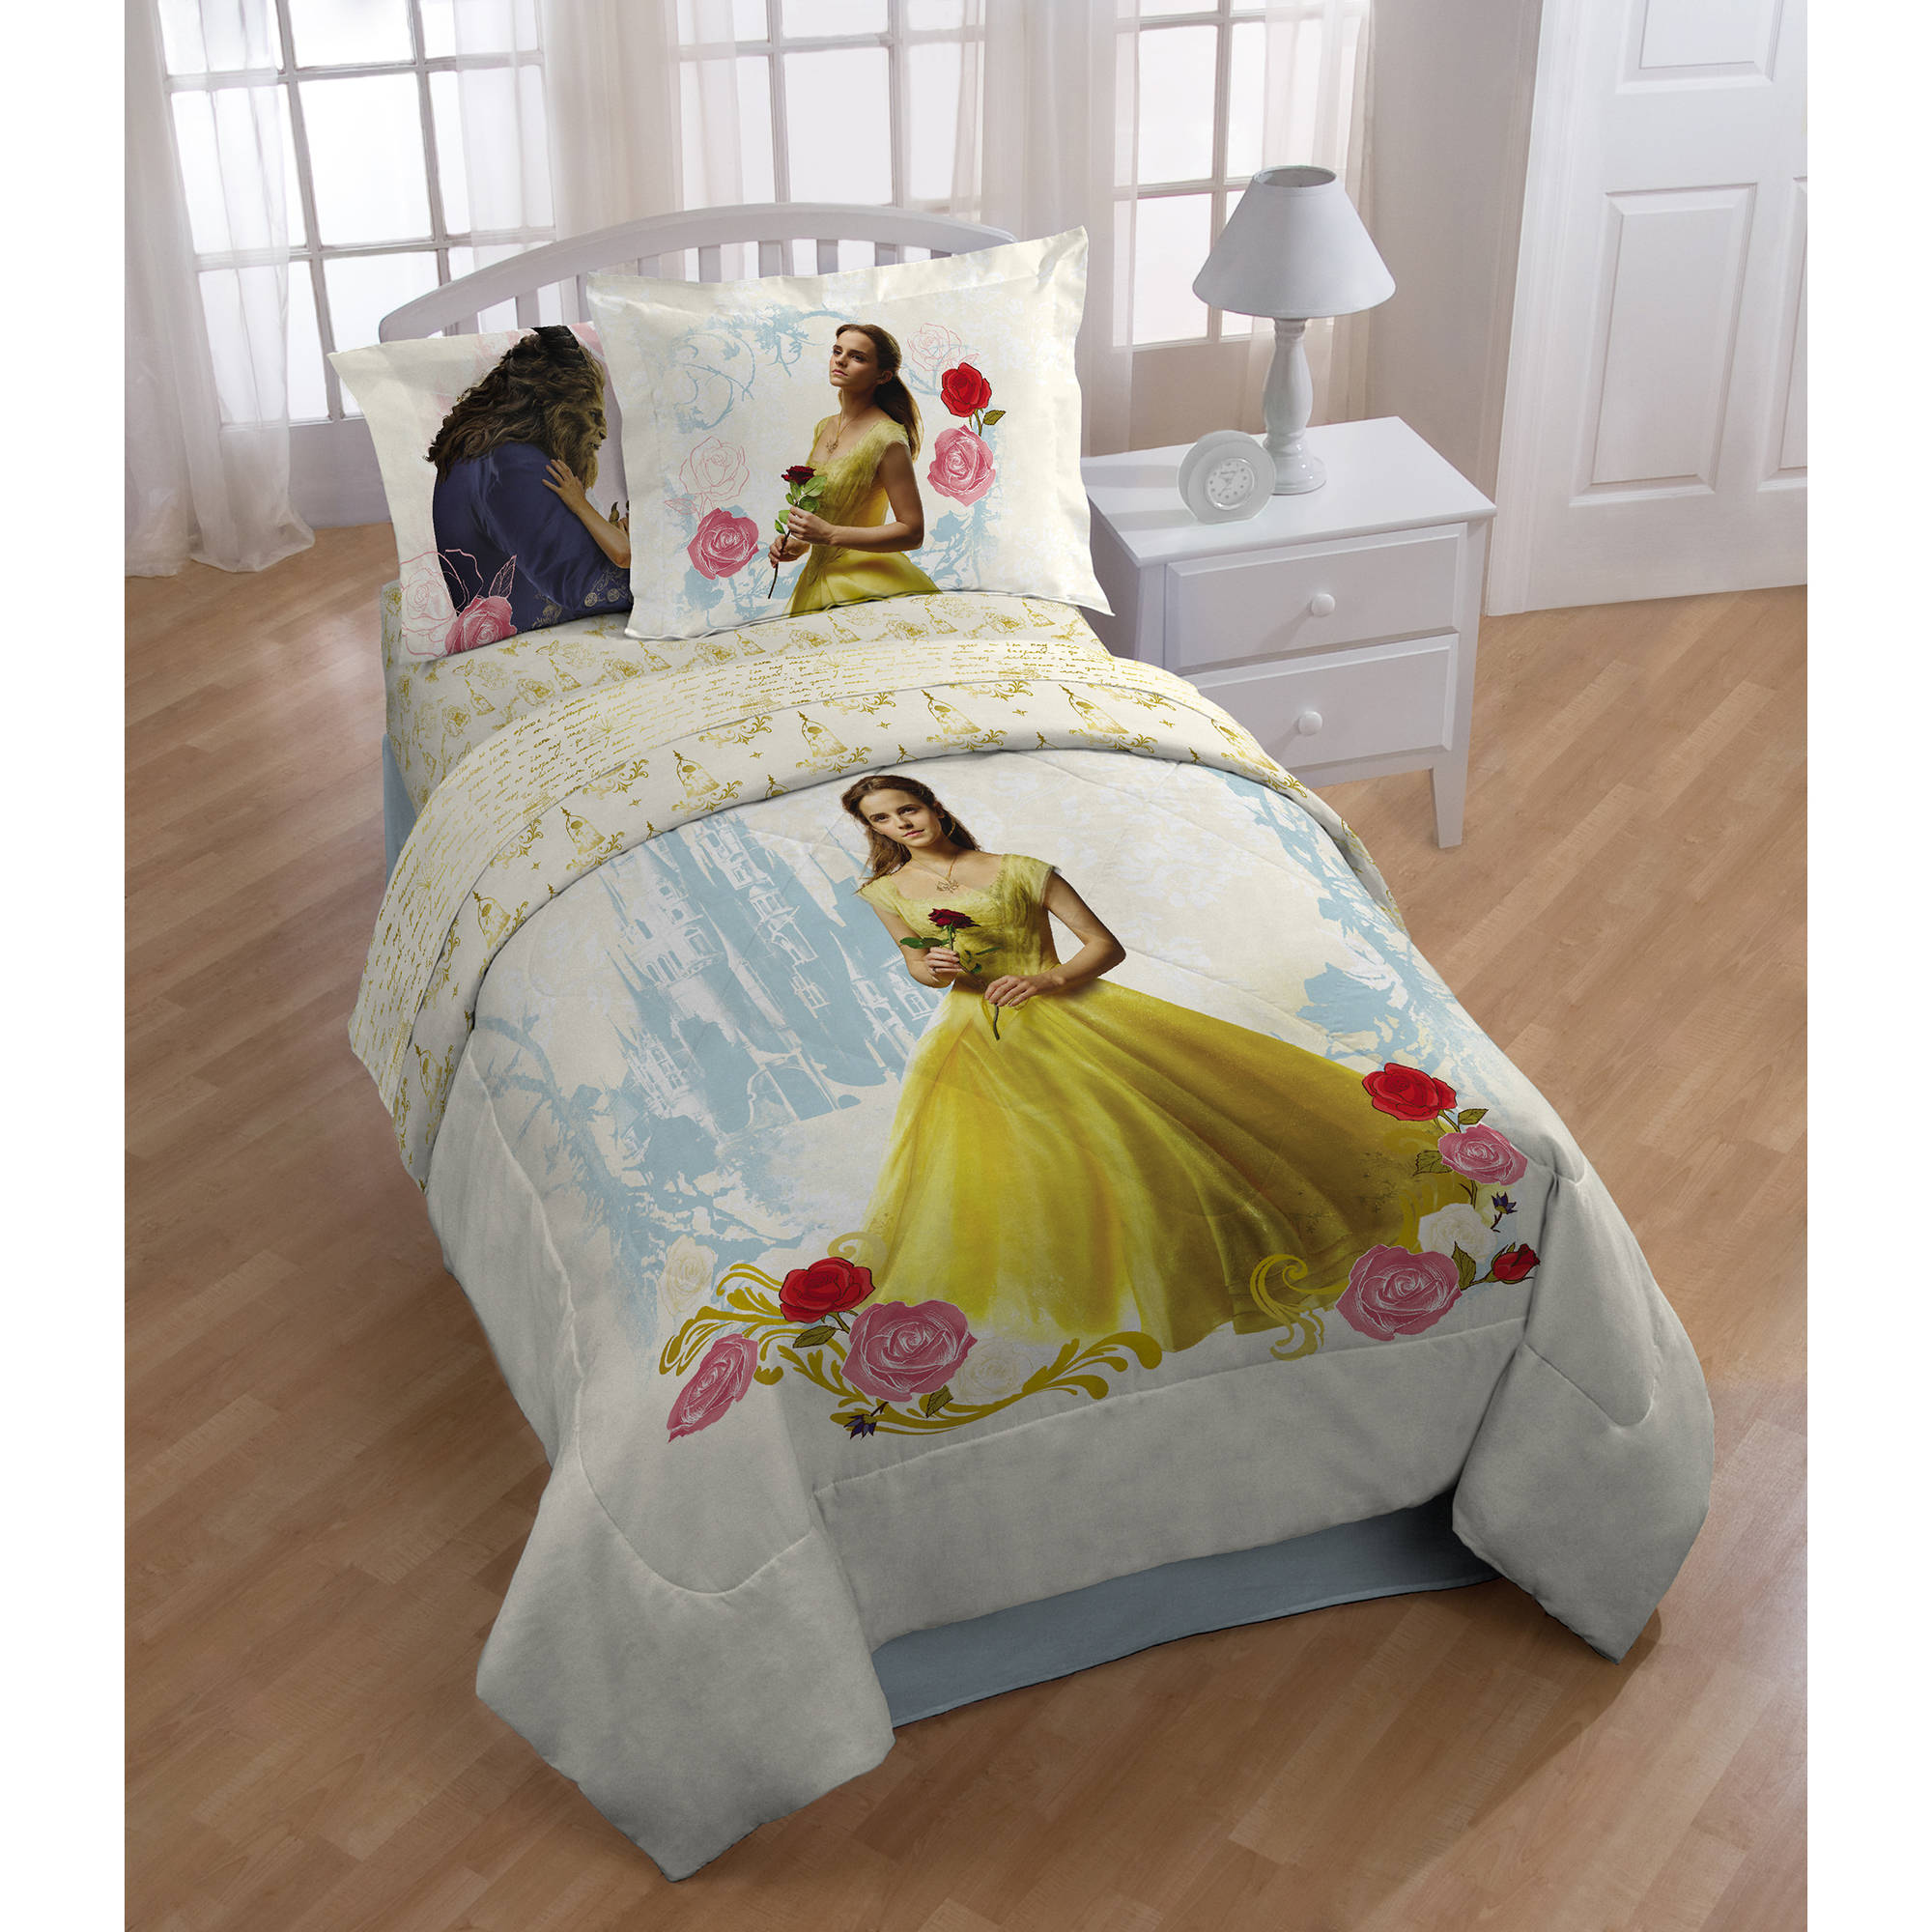 Disney's Beauty and the Beast 'Romantic Beauty' Kids' Bed-in-a-Bag